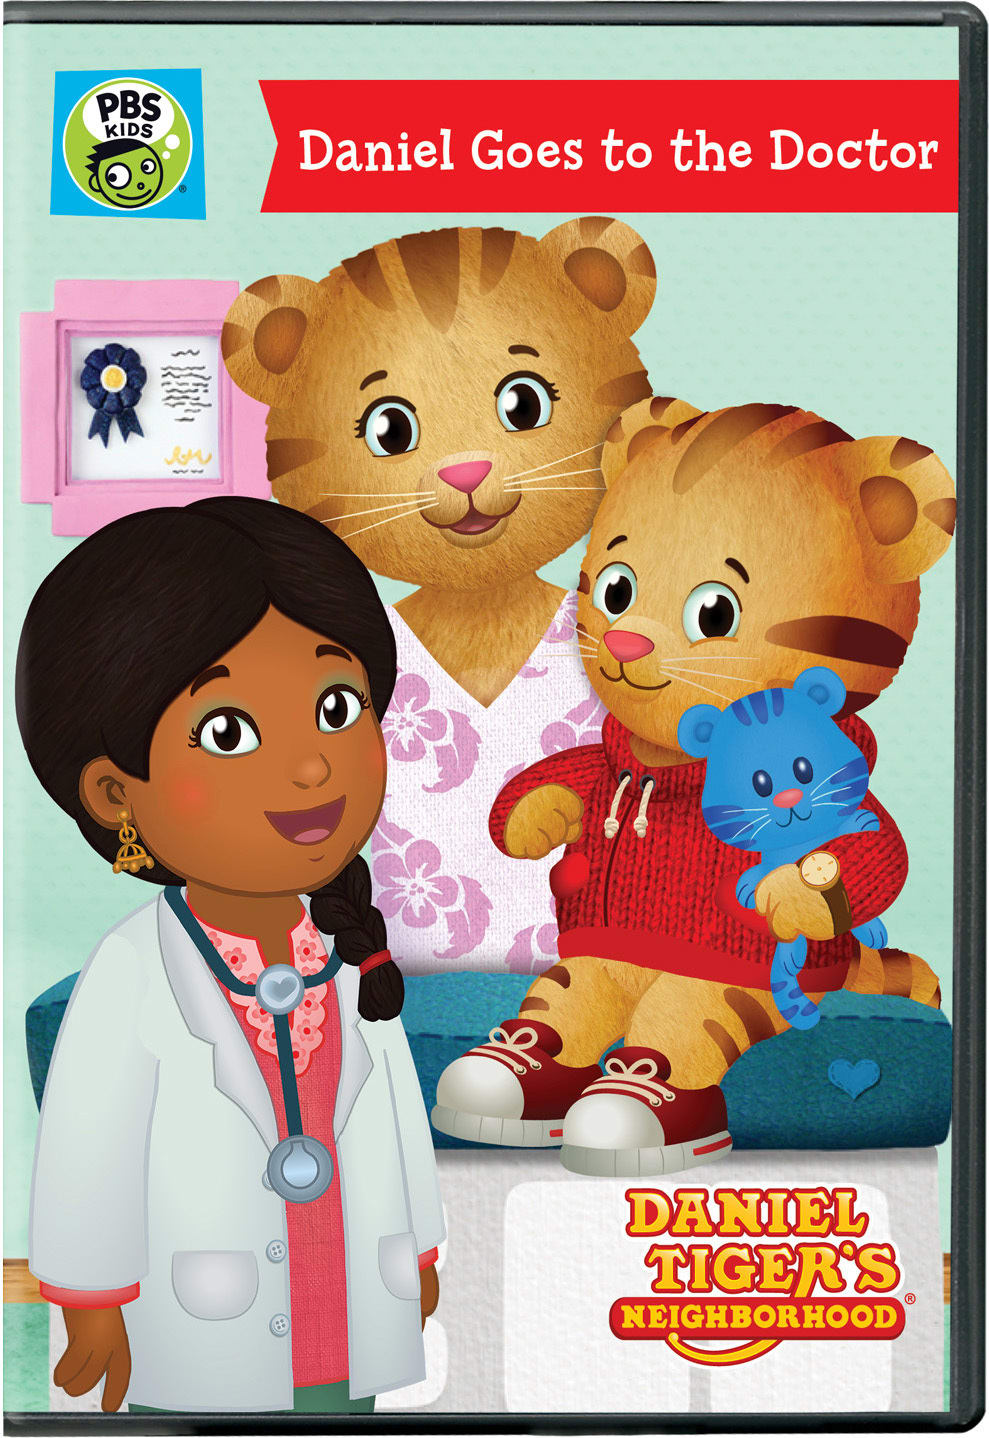 Daniel Tiger's Neighborhood: Daniel Goes to the Doctor [DVD]